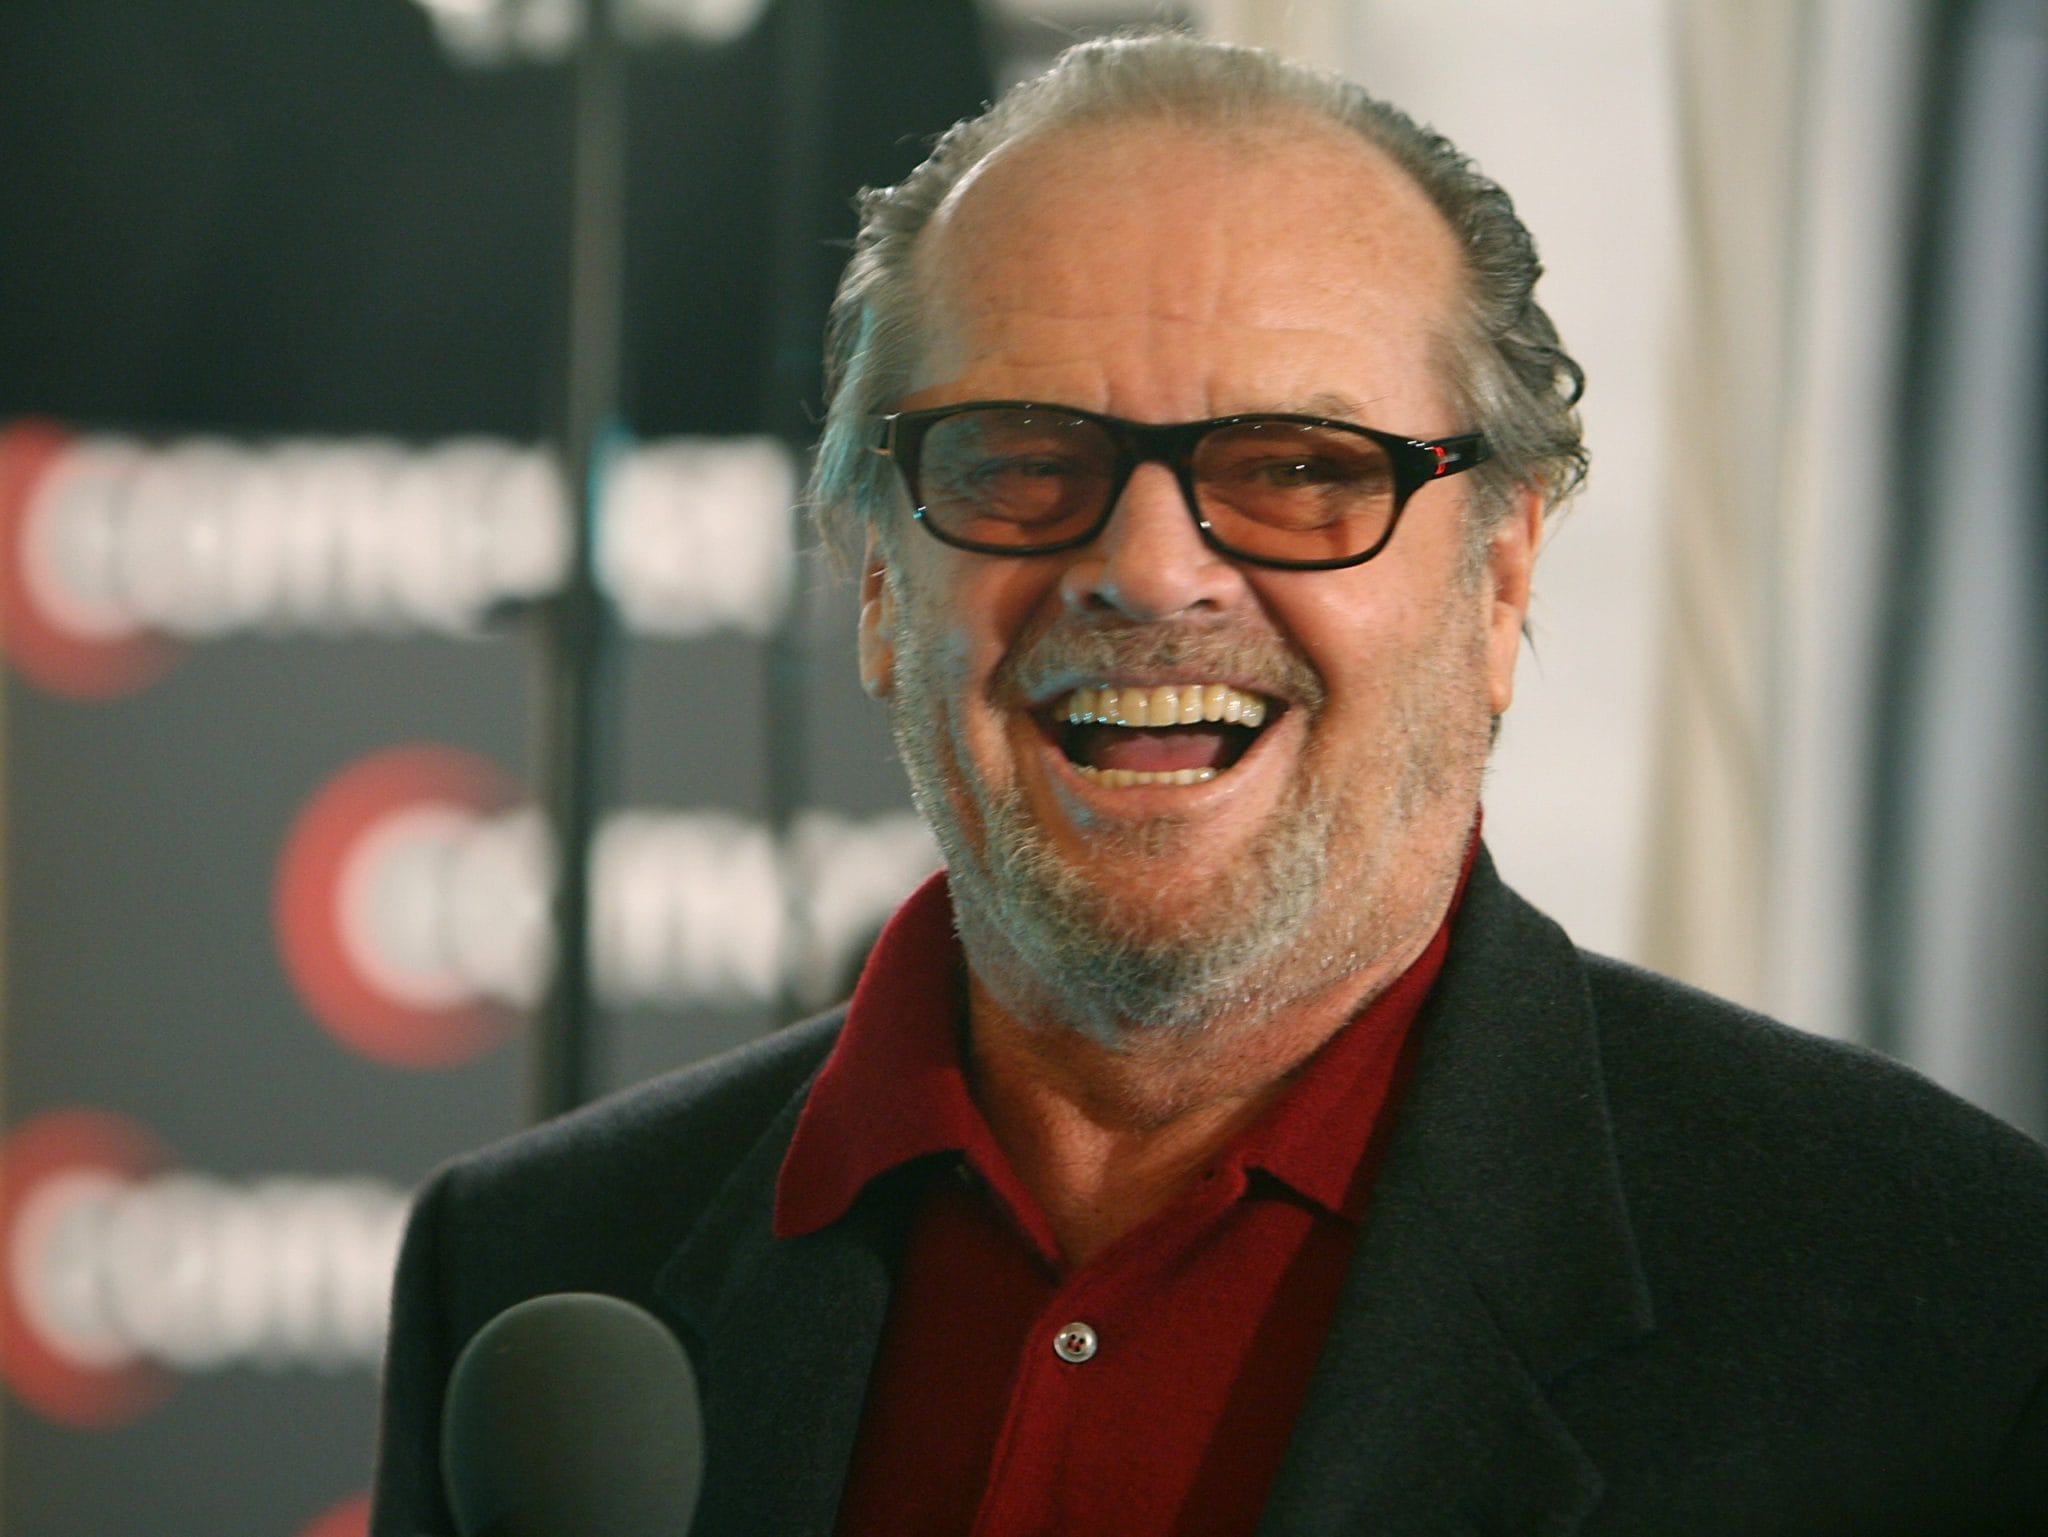 Jack Nicholson Desktop wallpapers